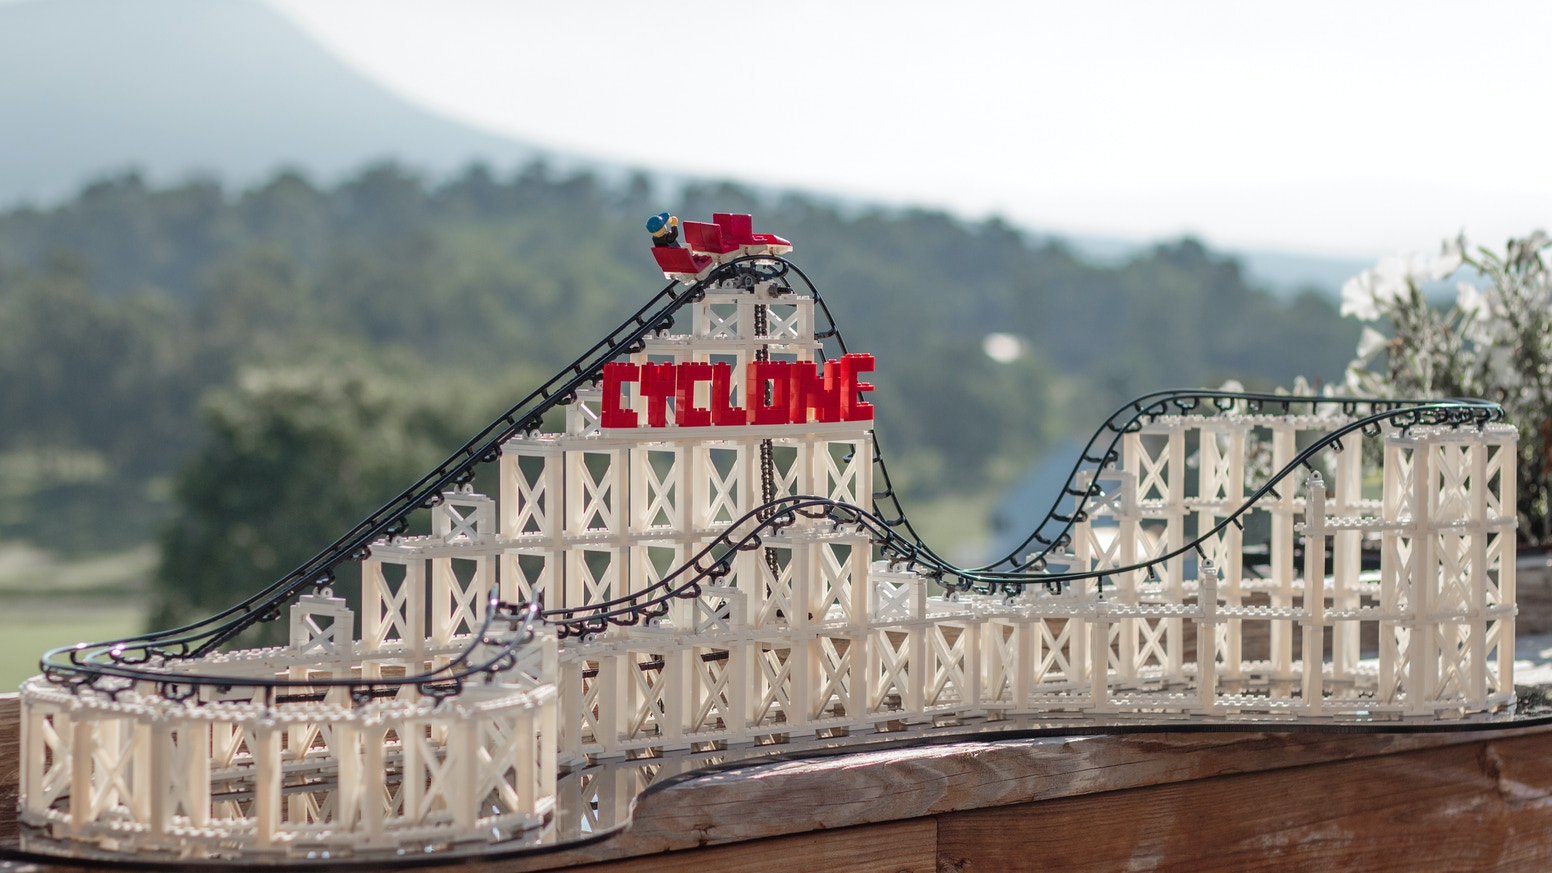 The Cyclone is a working roller coaster model kit that is compatible with the world's leading building block system.